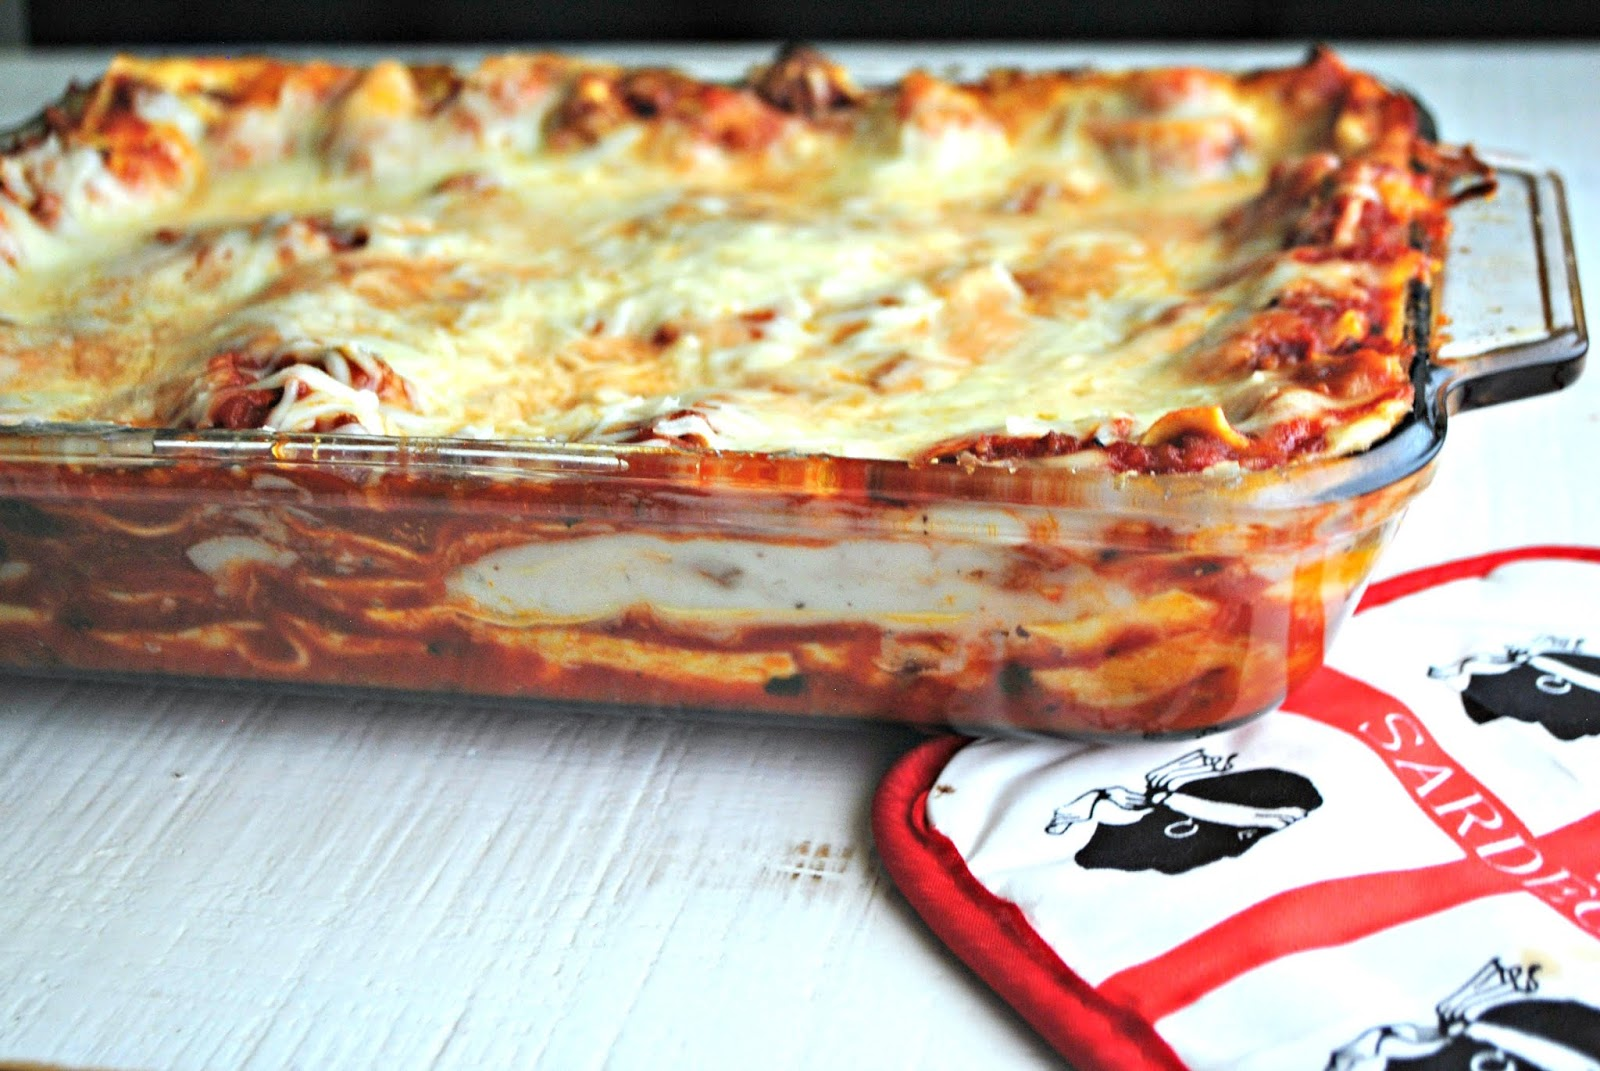 Real, authentic, Italian lasagna recipe straight from Italy